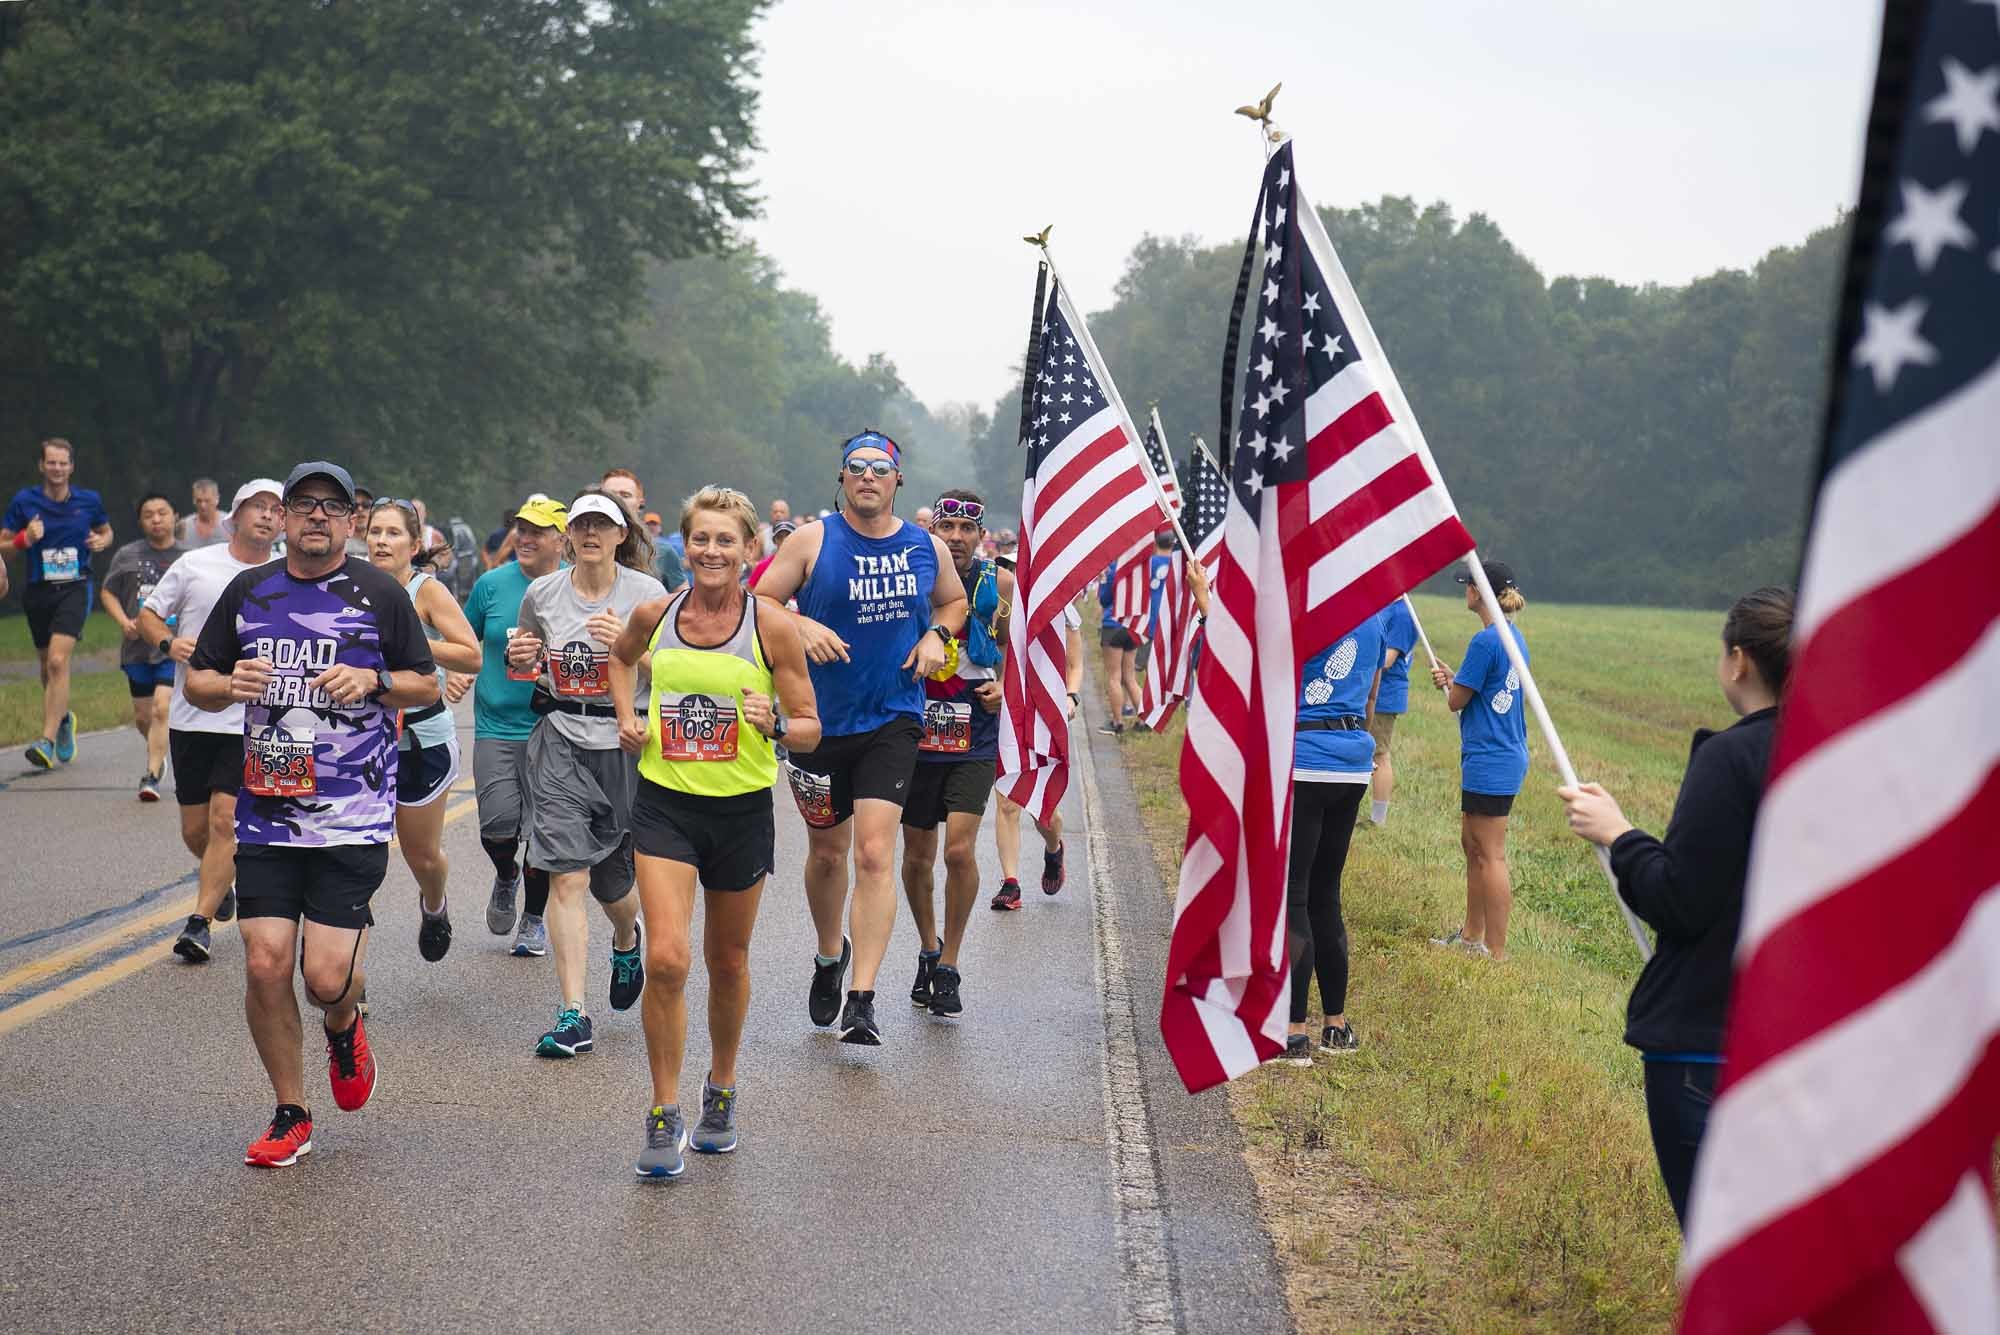 Air Force Marathon Preps for September In-Person 25th Anniversary Event